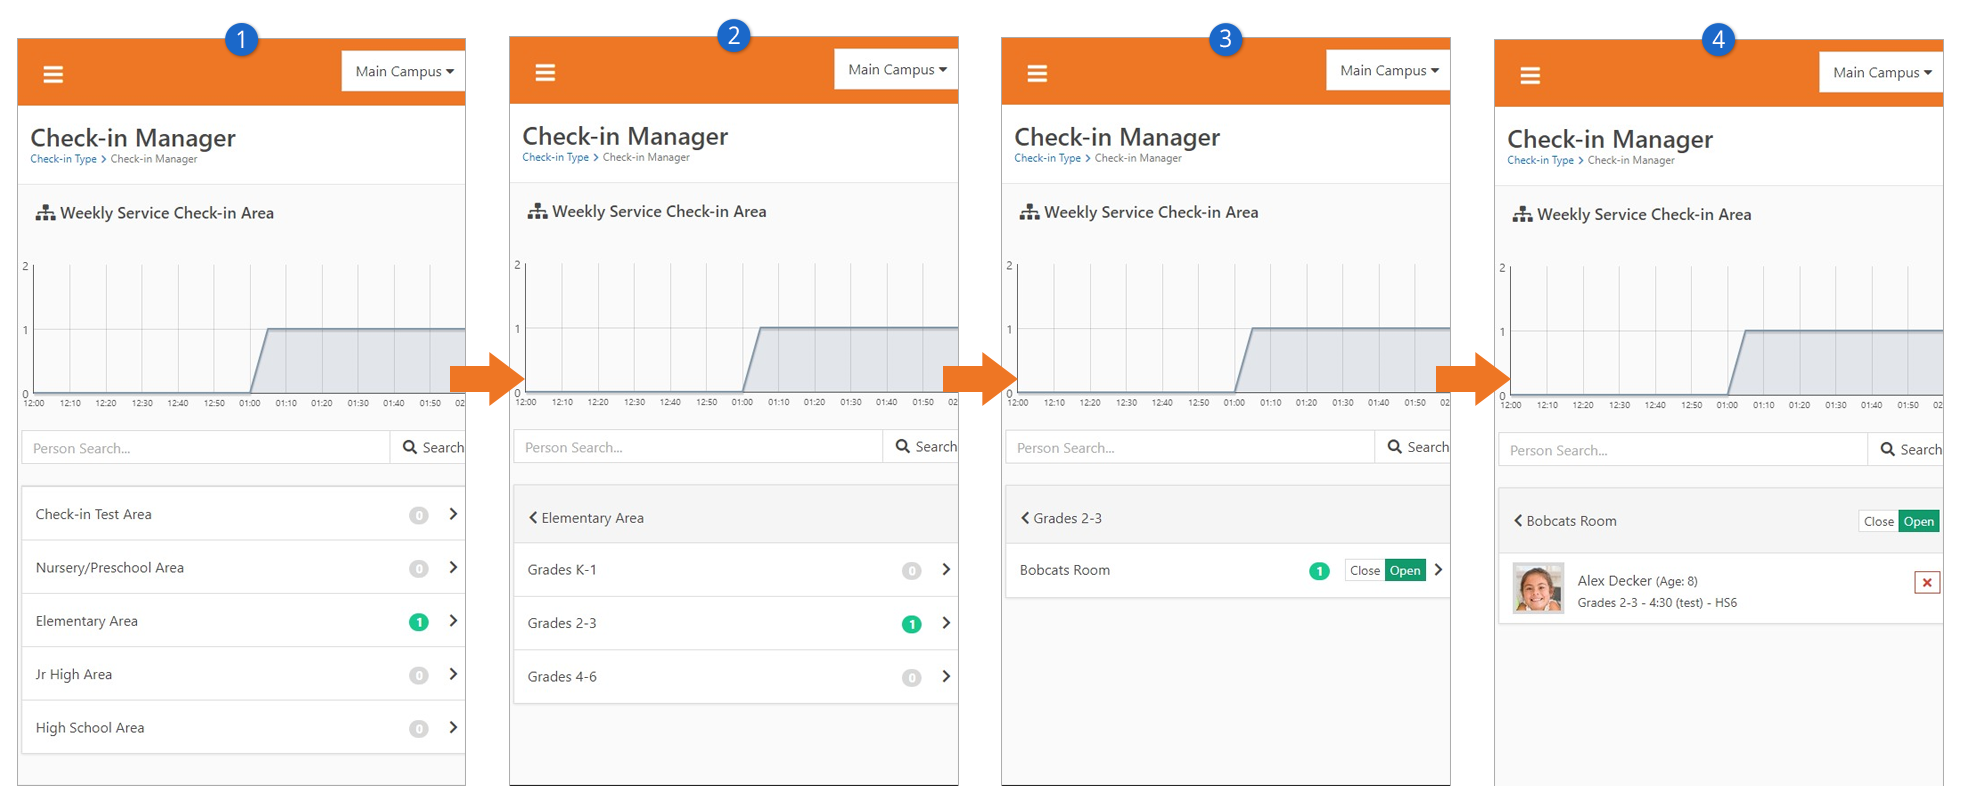 Check-in Manager Screenflow